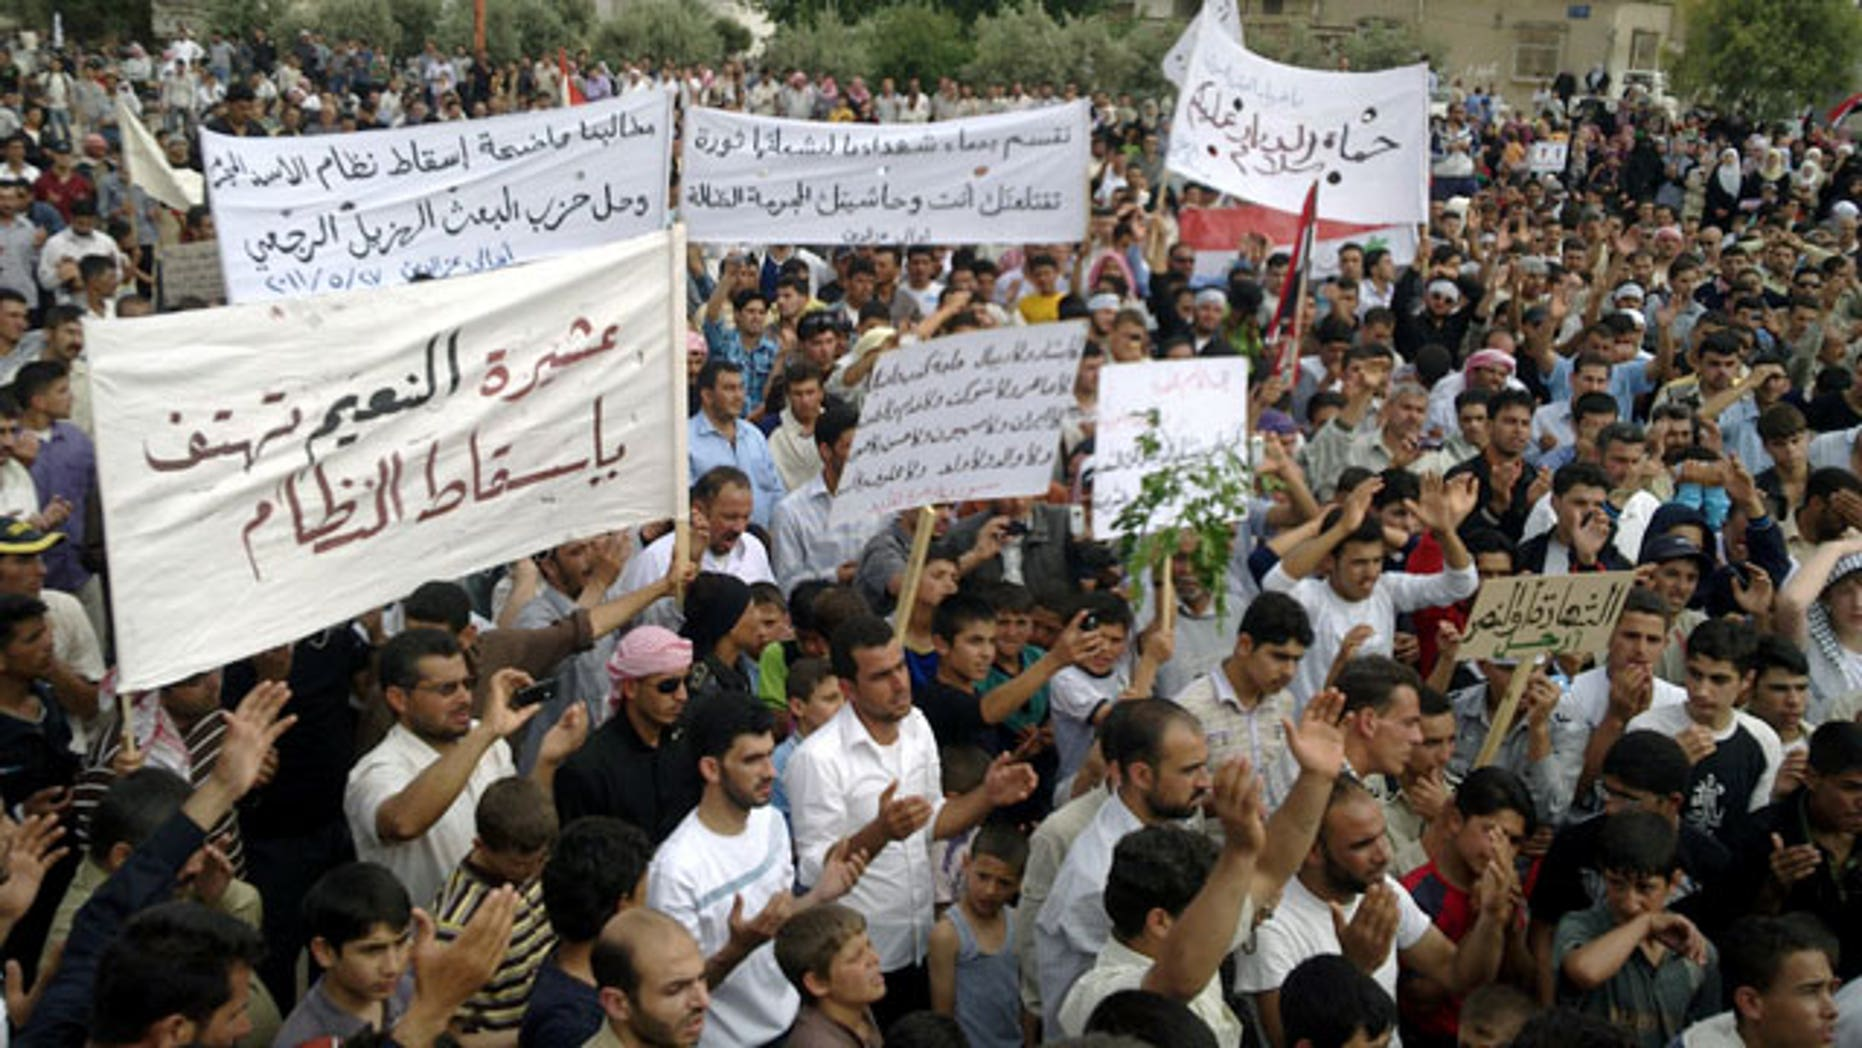 May 27: Syrian anti-regime protesters carry banners during a rally in Talbiseh, in the central province of Homs, Syria.